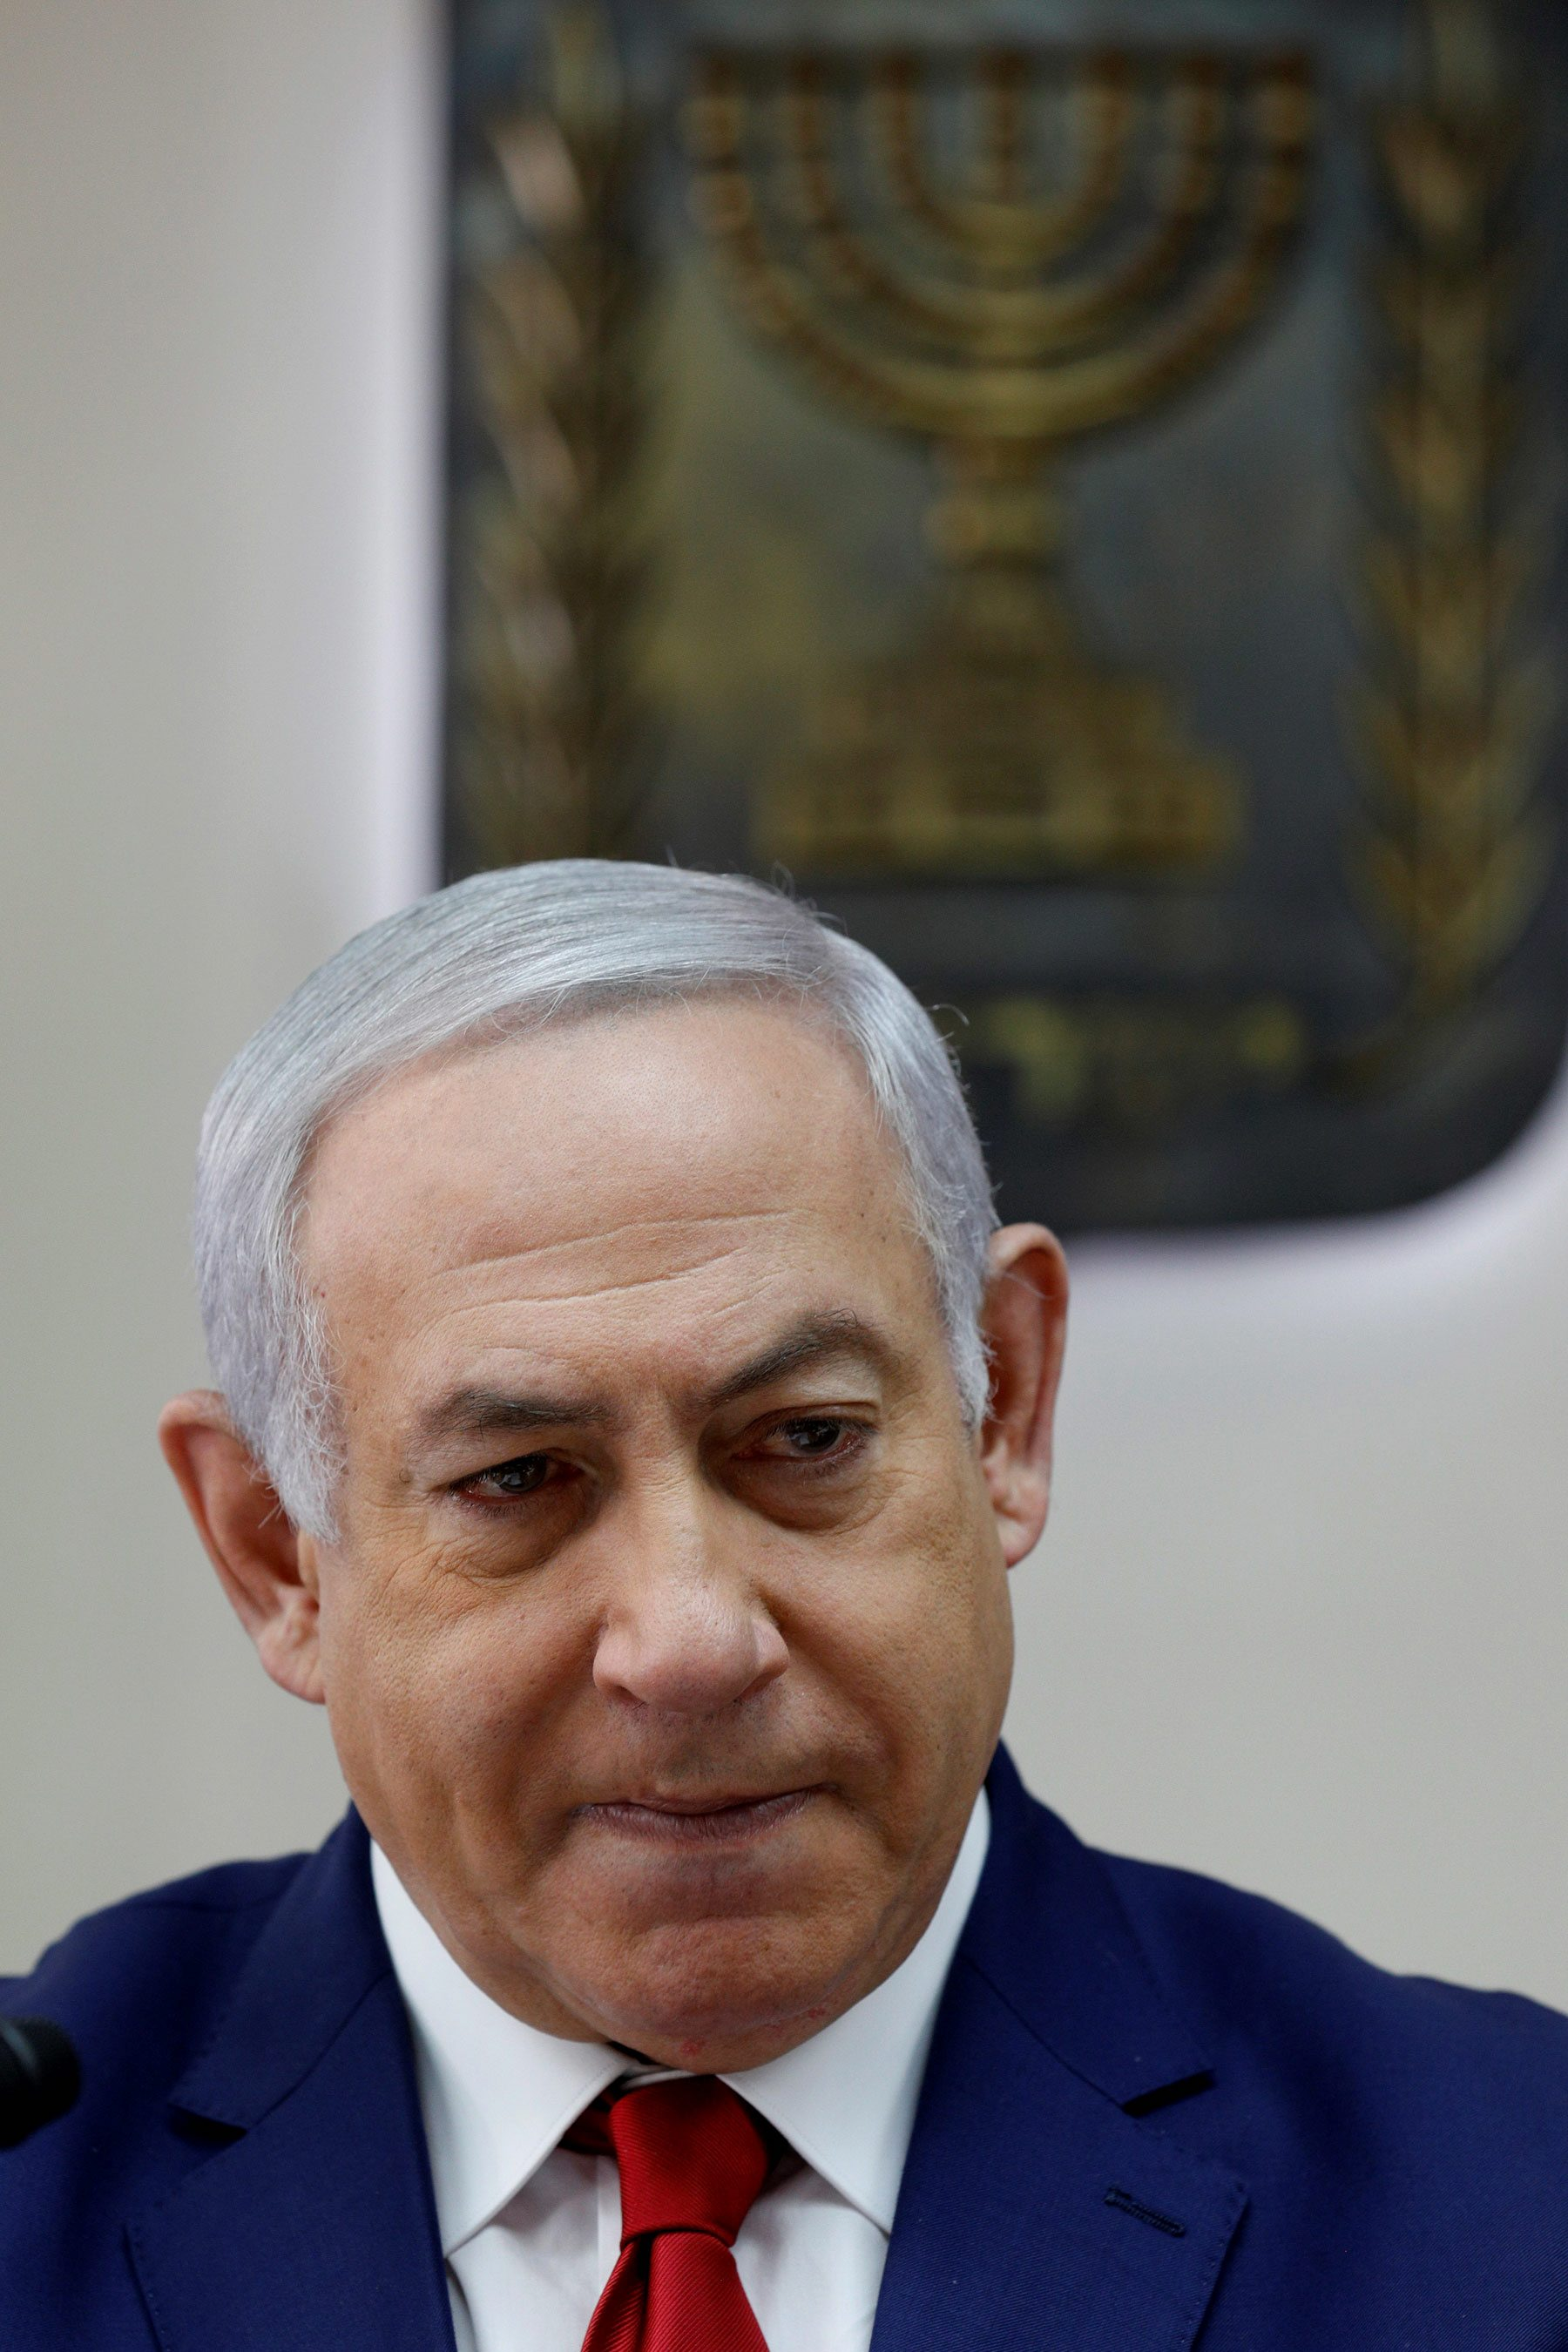 Benjamin Netanyahu is neither loved nor particularly liked in Israel, but necessary for survival